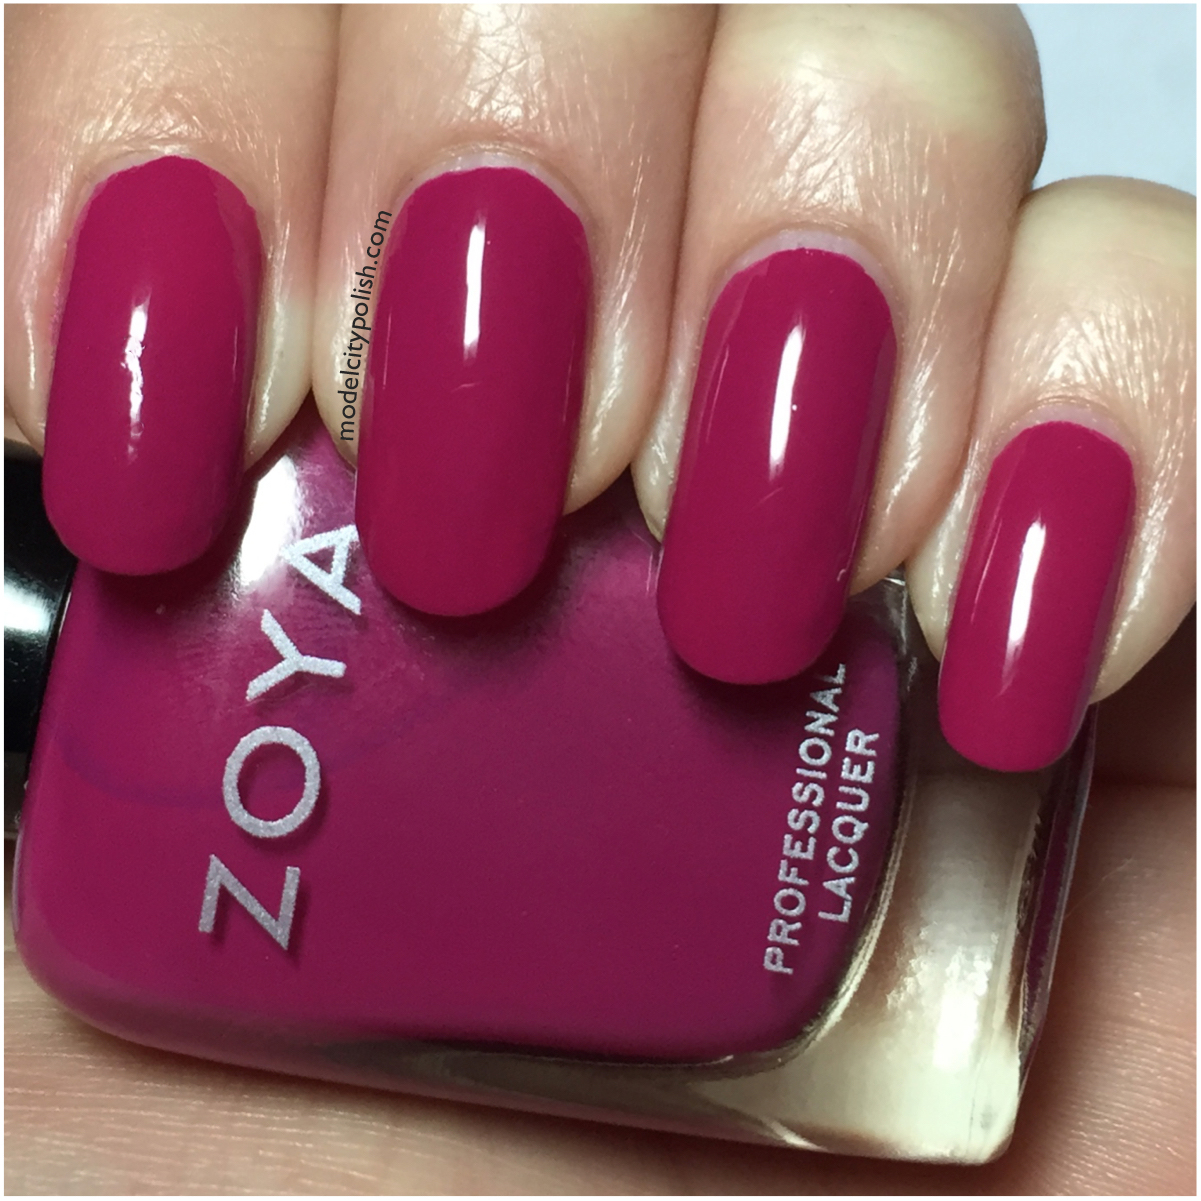 Island Fun Collection by Zoya Nail Polish